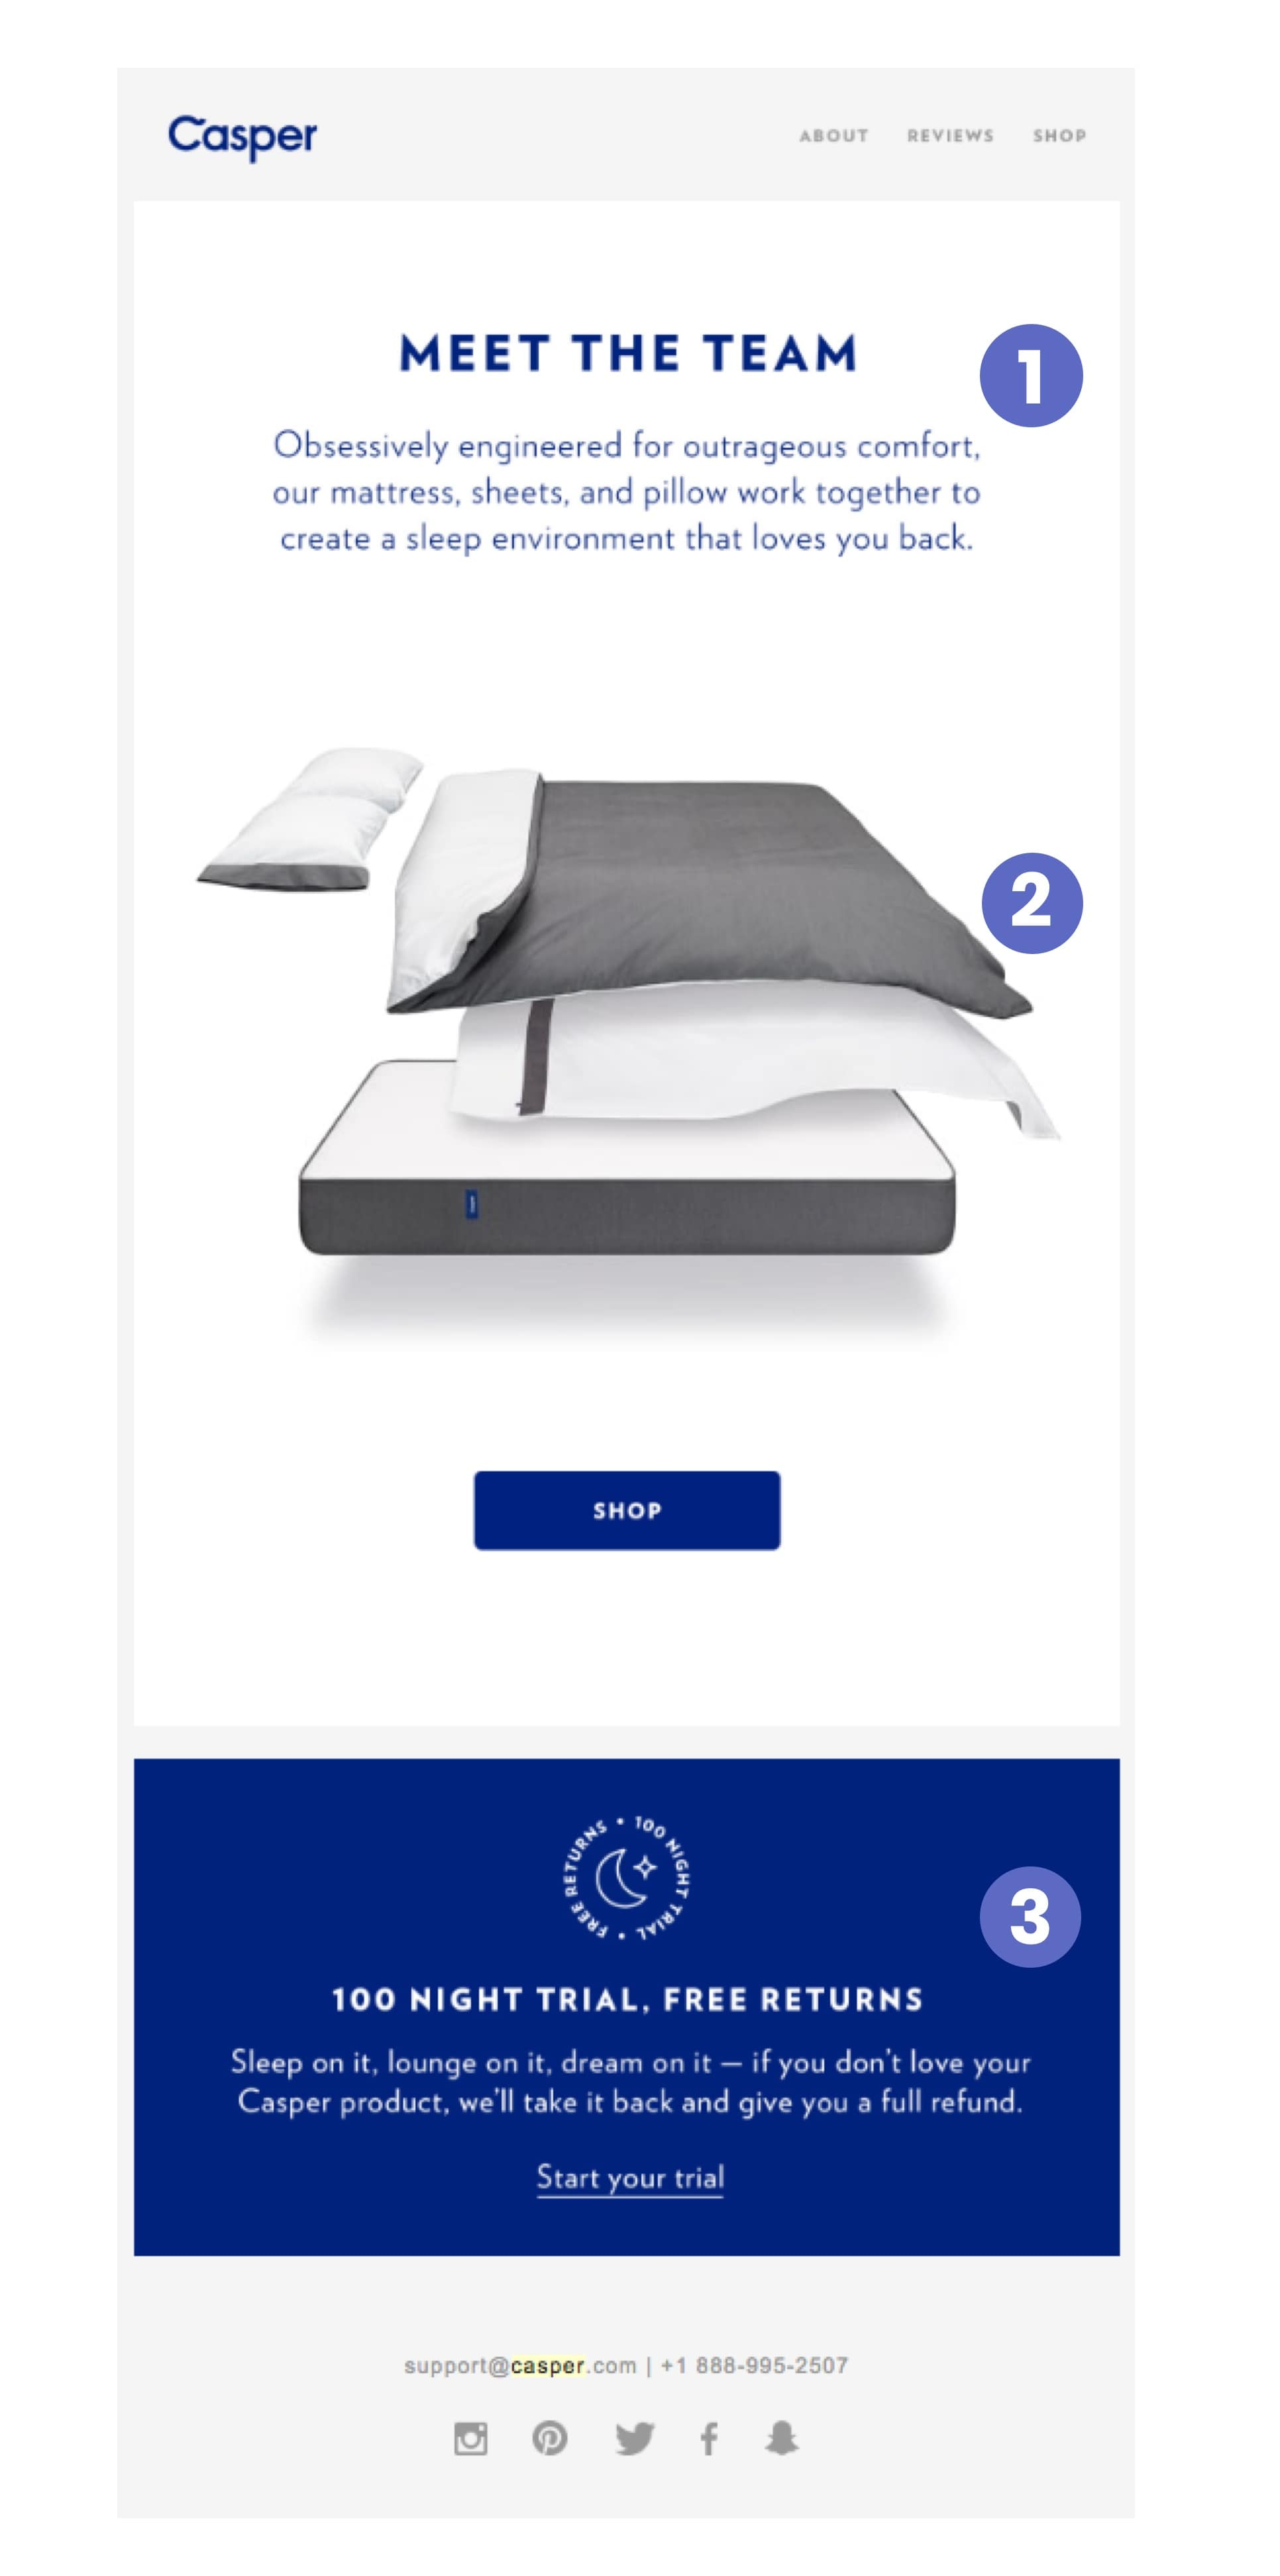 casper product education email